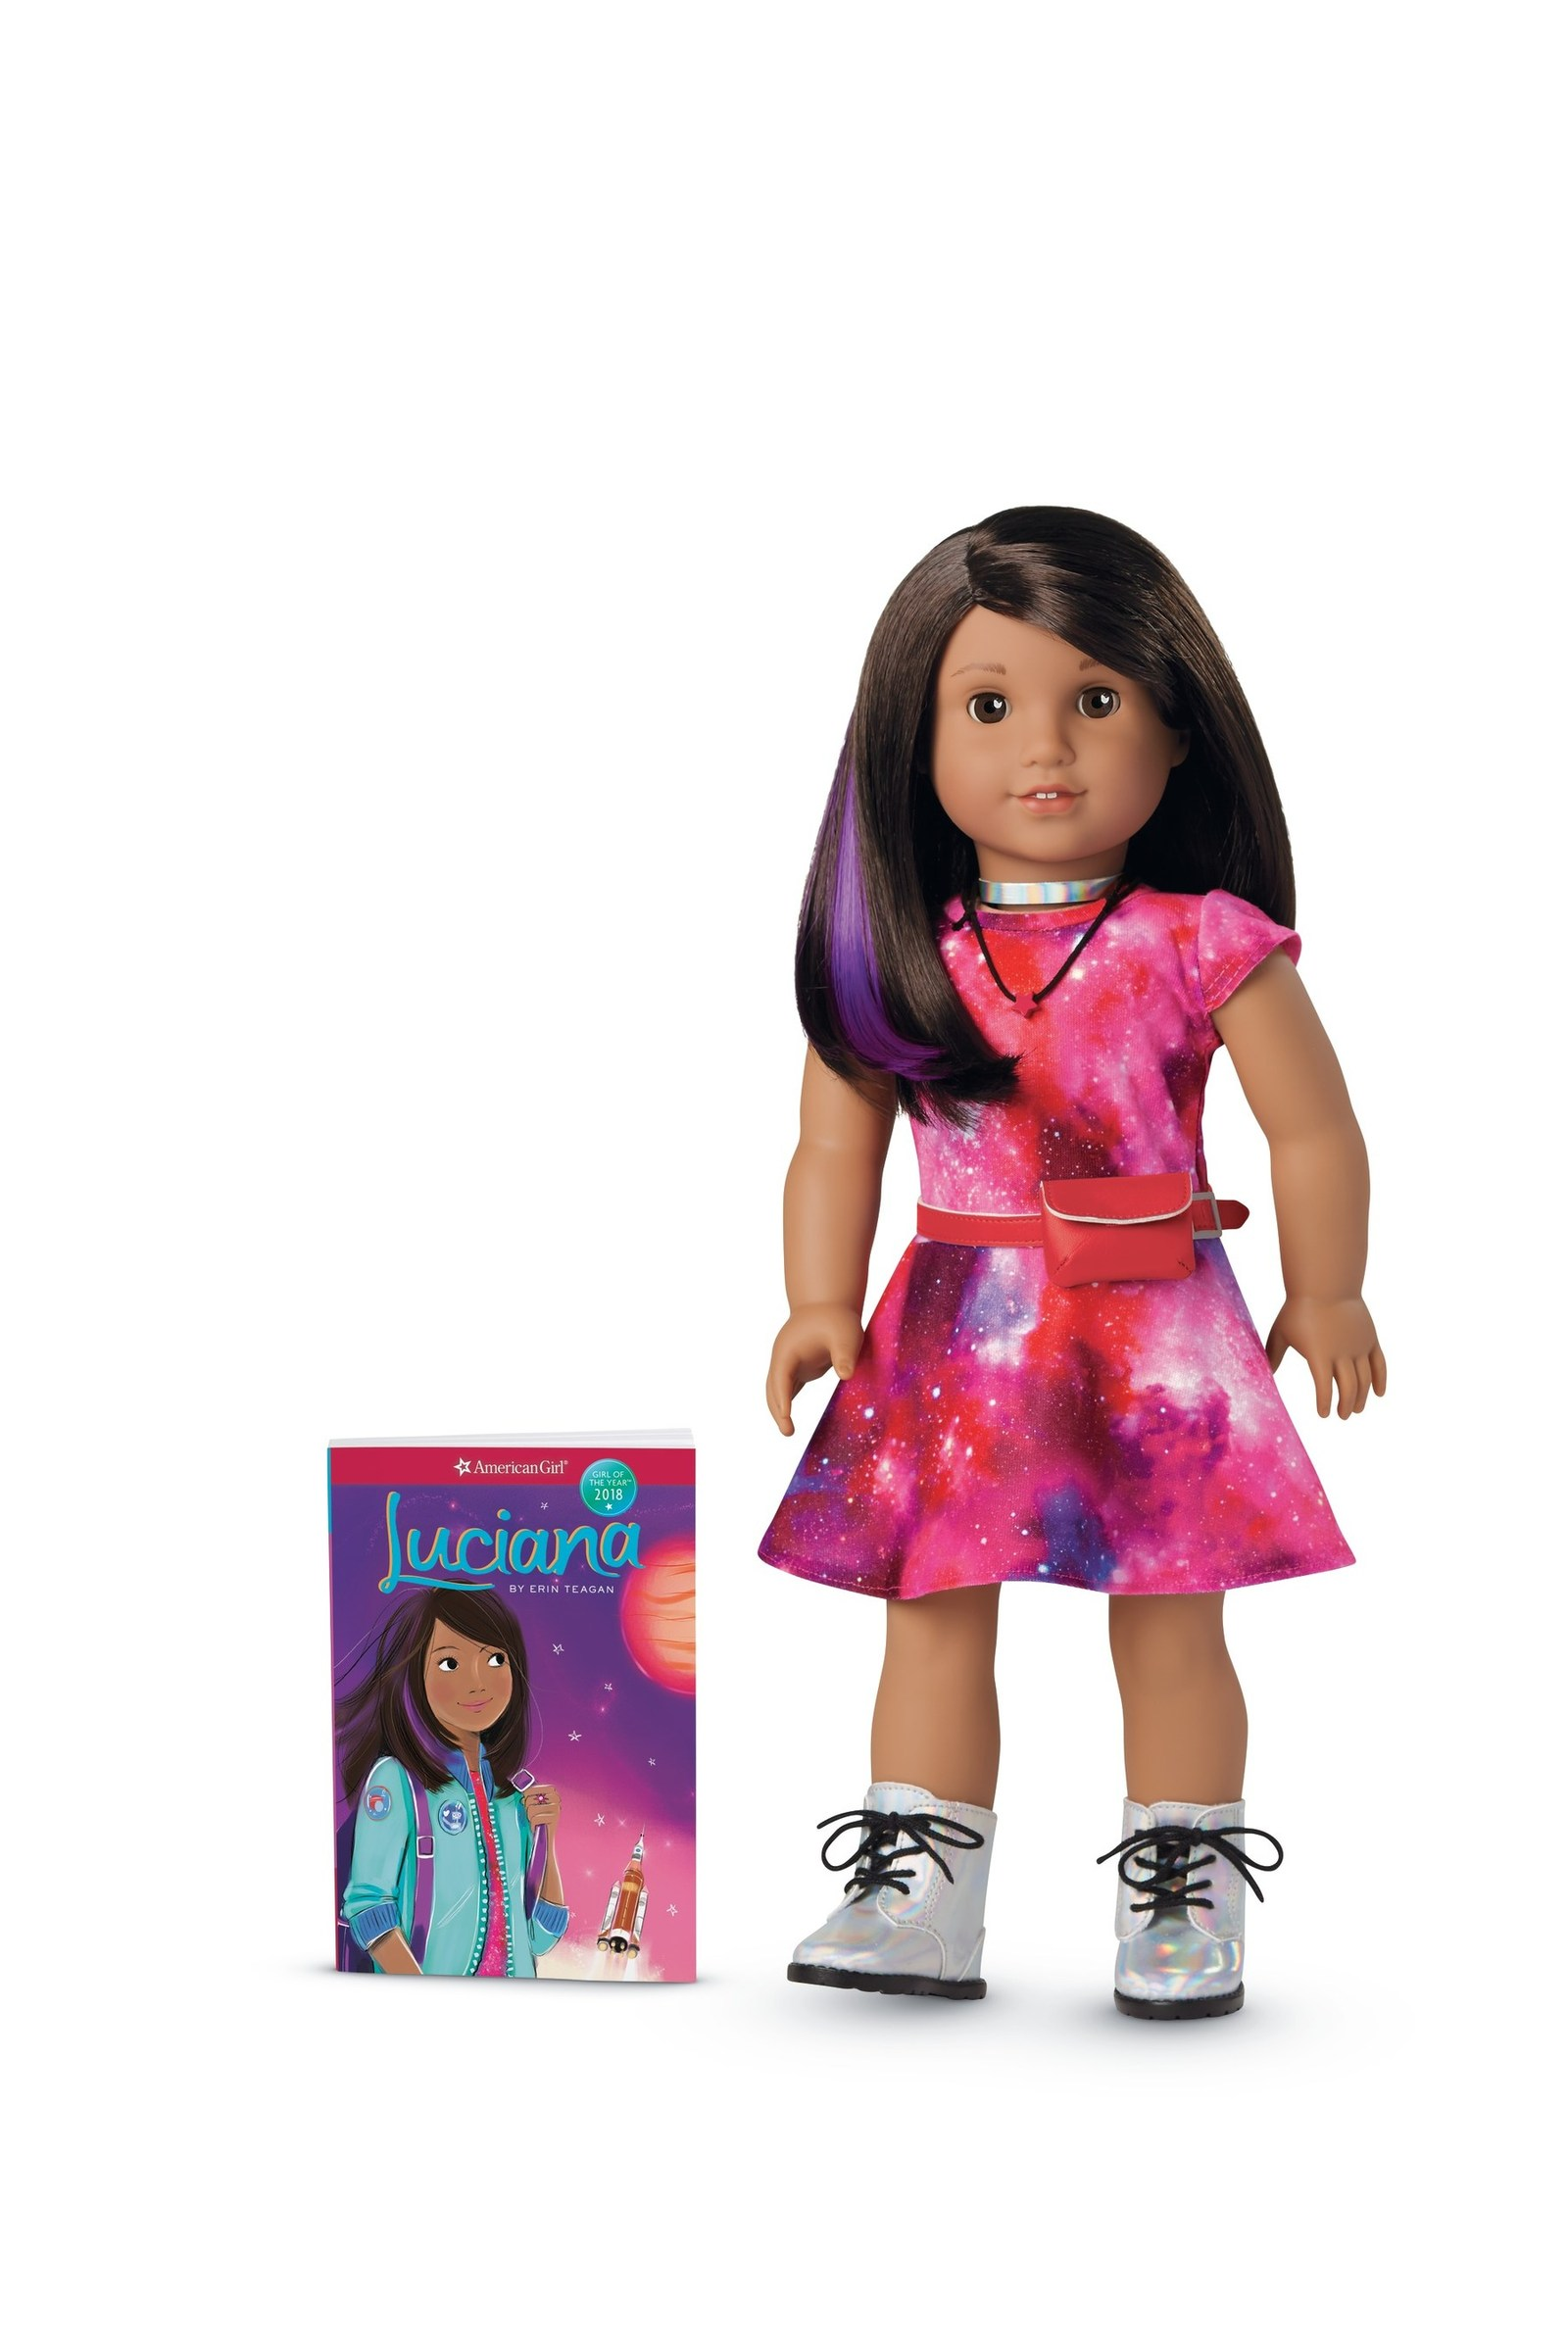 Who Is Luciana Vega Nasa Helps Develop American Girl Doll